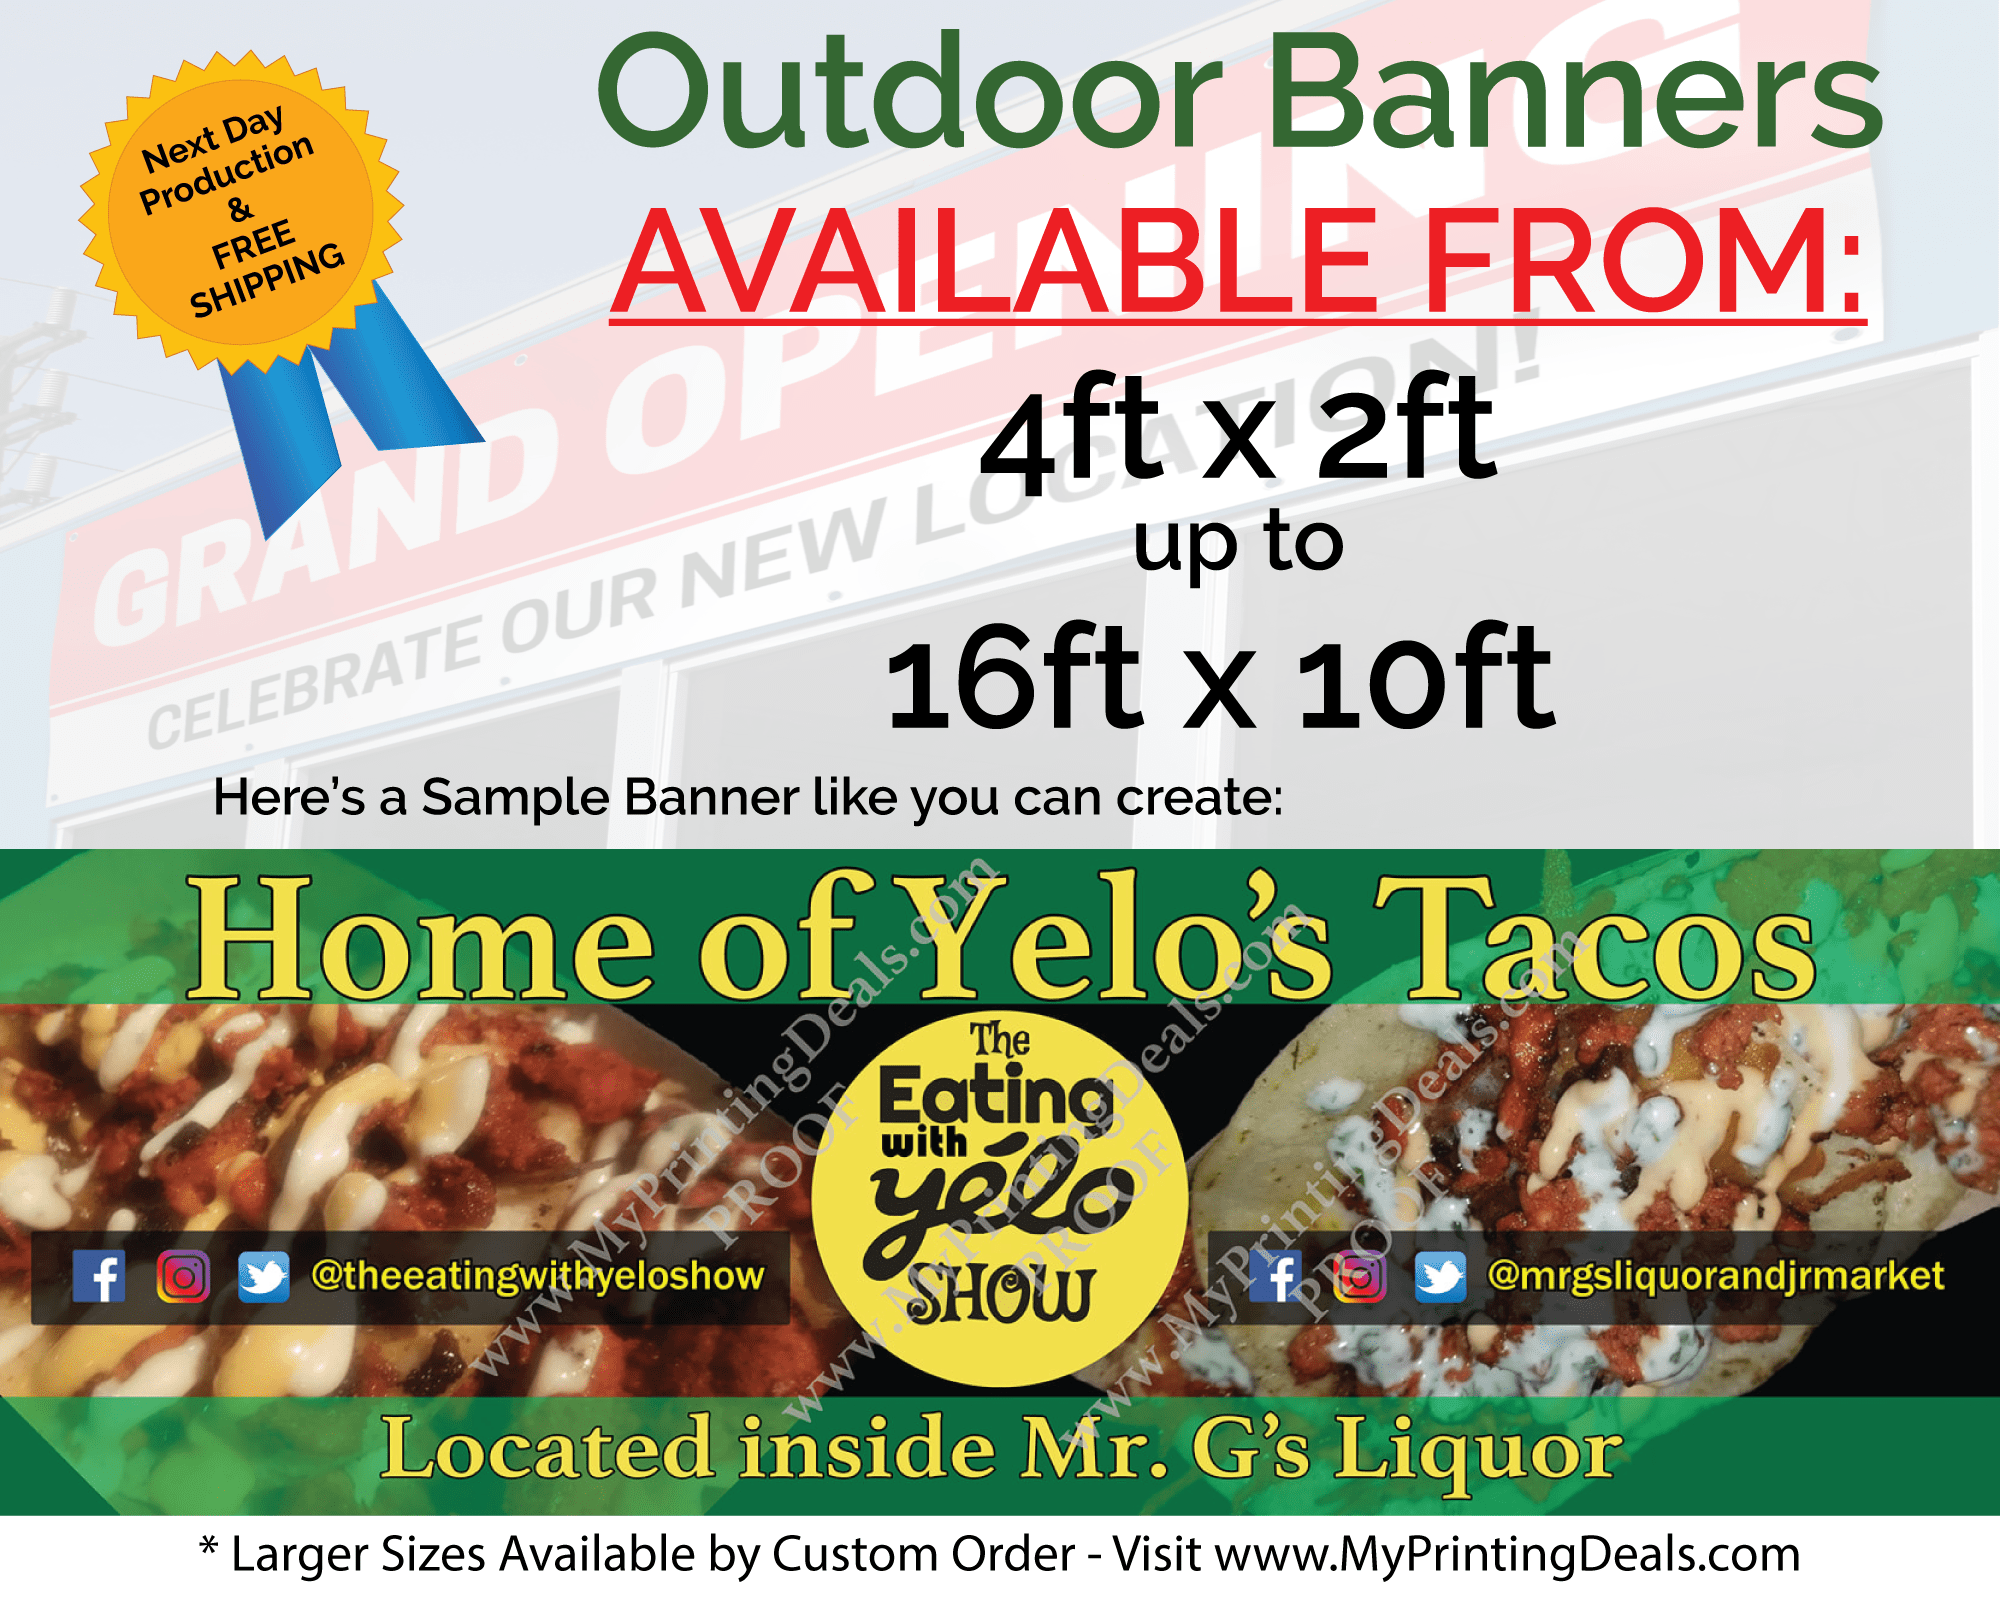 Order your Banners from MyPrintingDeals.com Today!